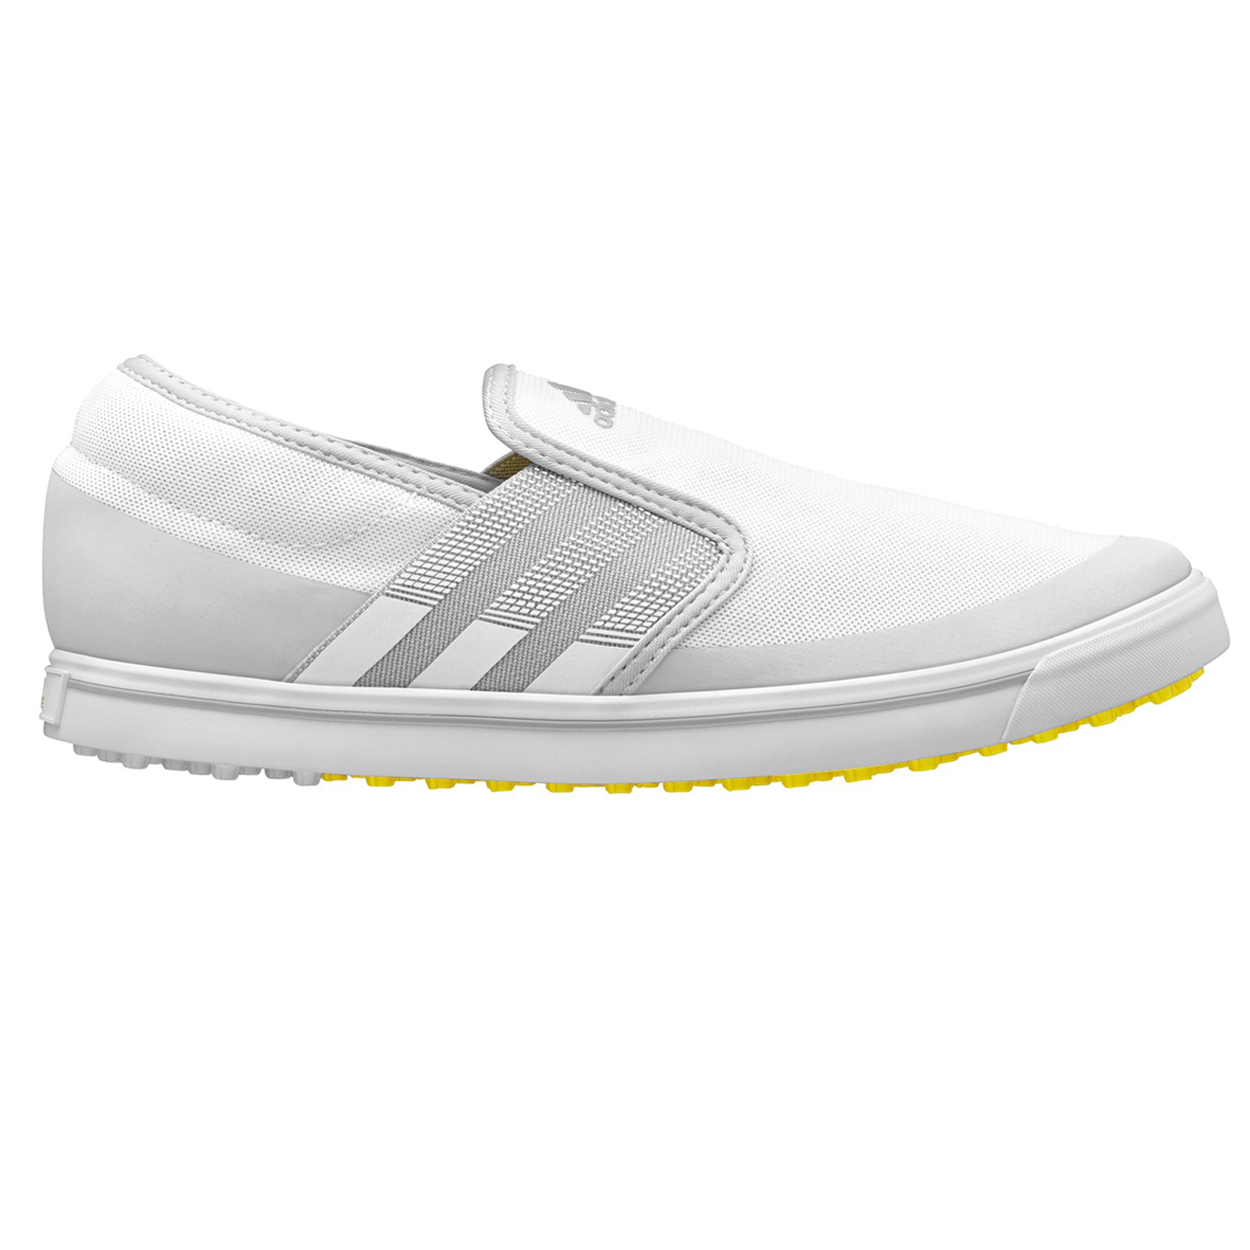 adidas womens golf shoes